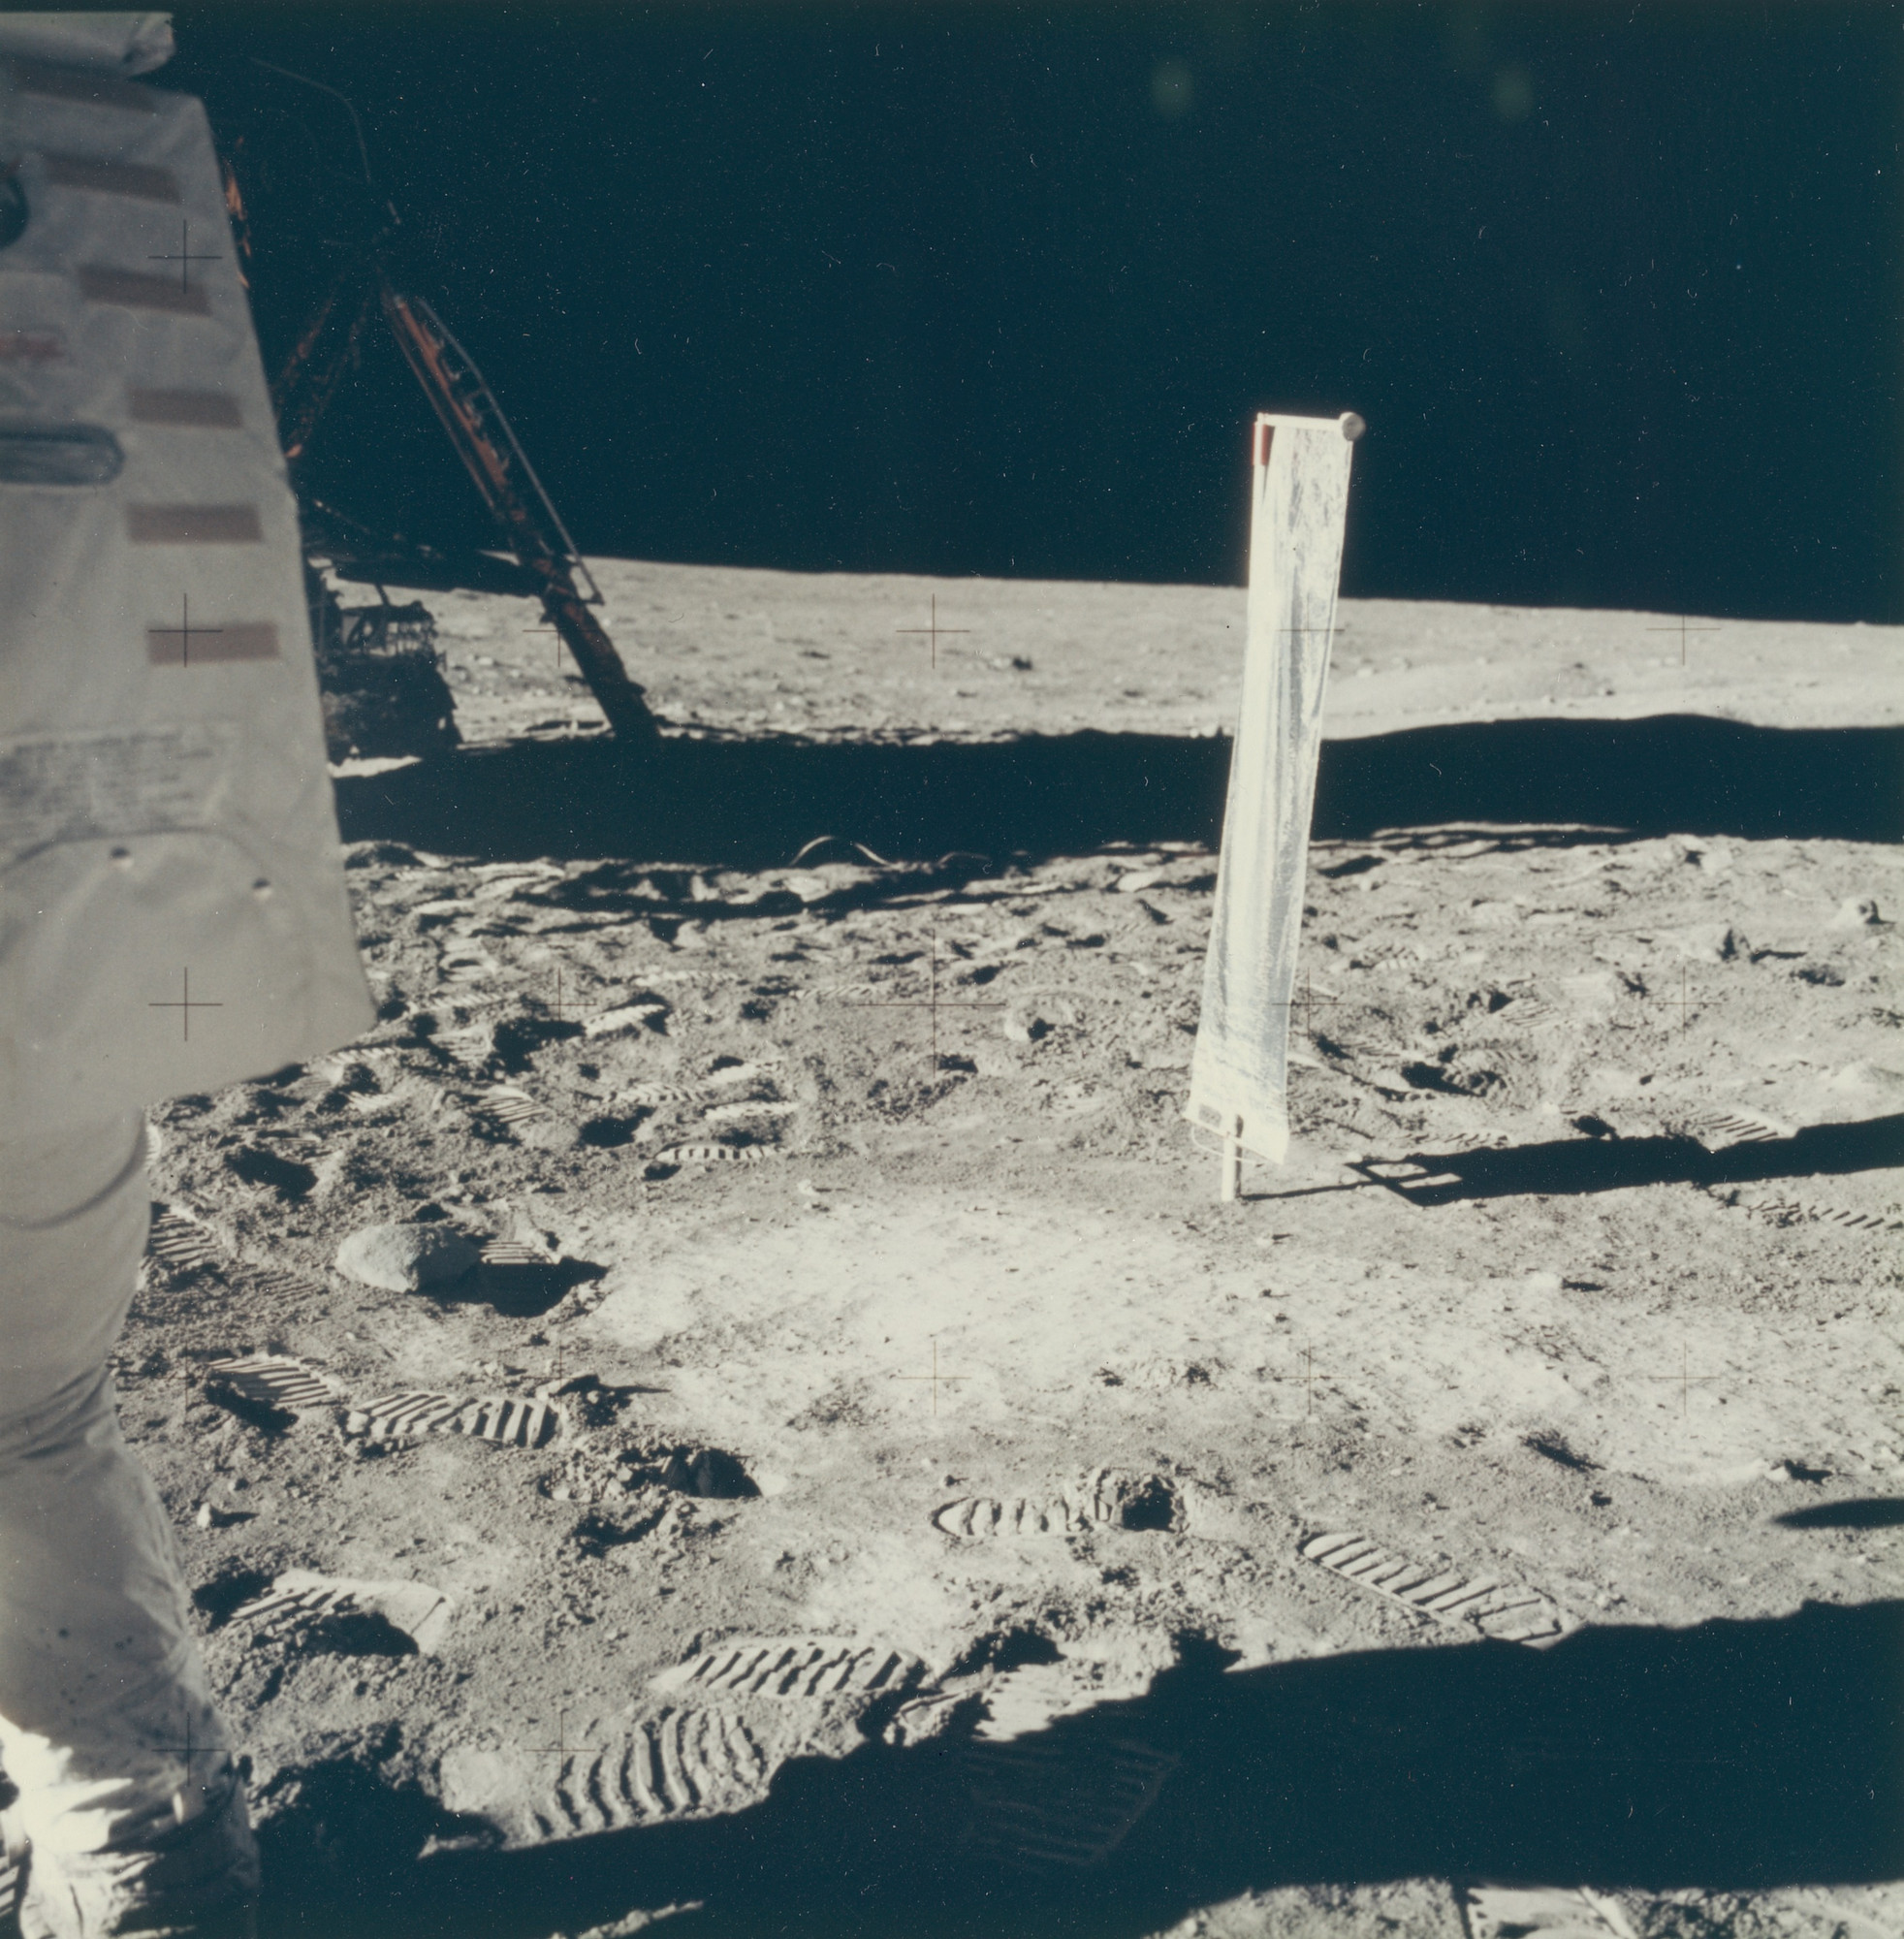 NASA. Untitled photograph from the Apollo 11 mission. July 20, 1969